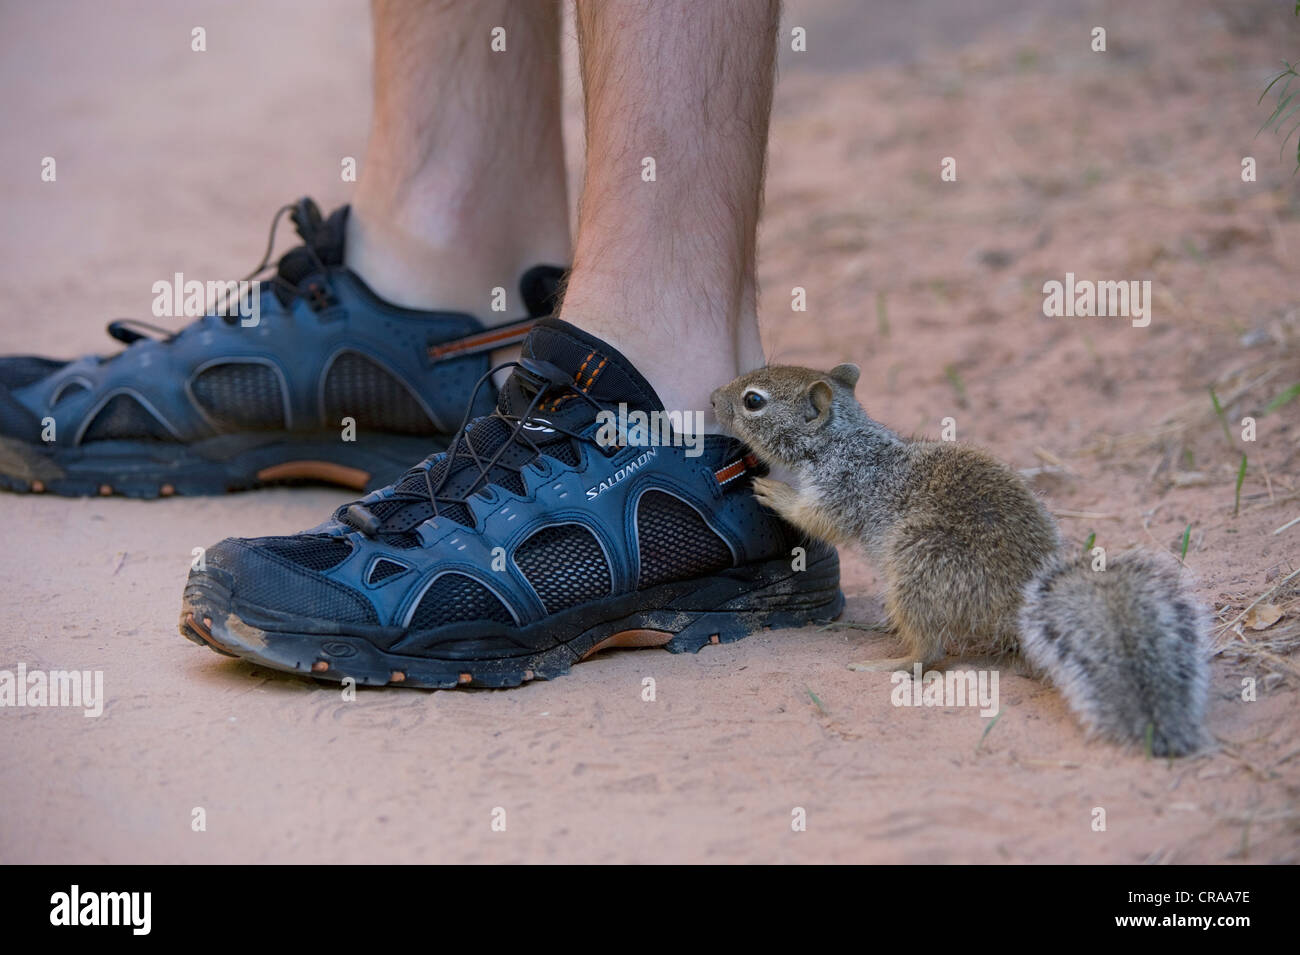 Californian ground squirrel (Otospermophilus beecheyi), curious, at the shoes of a visitor, Zion National Park, - Stock Image